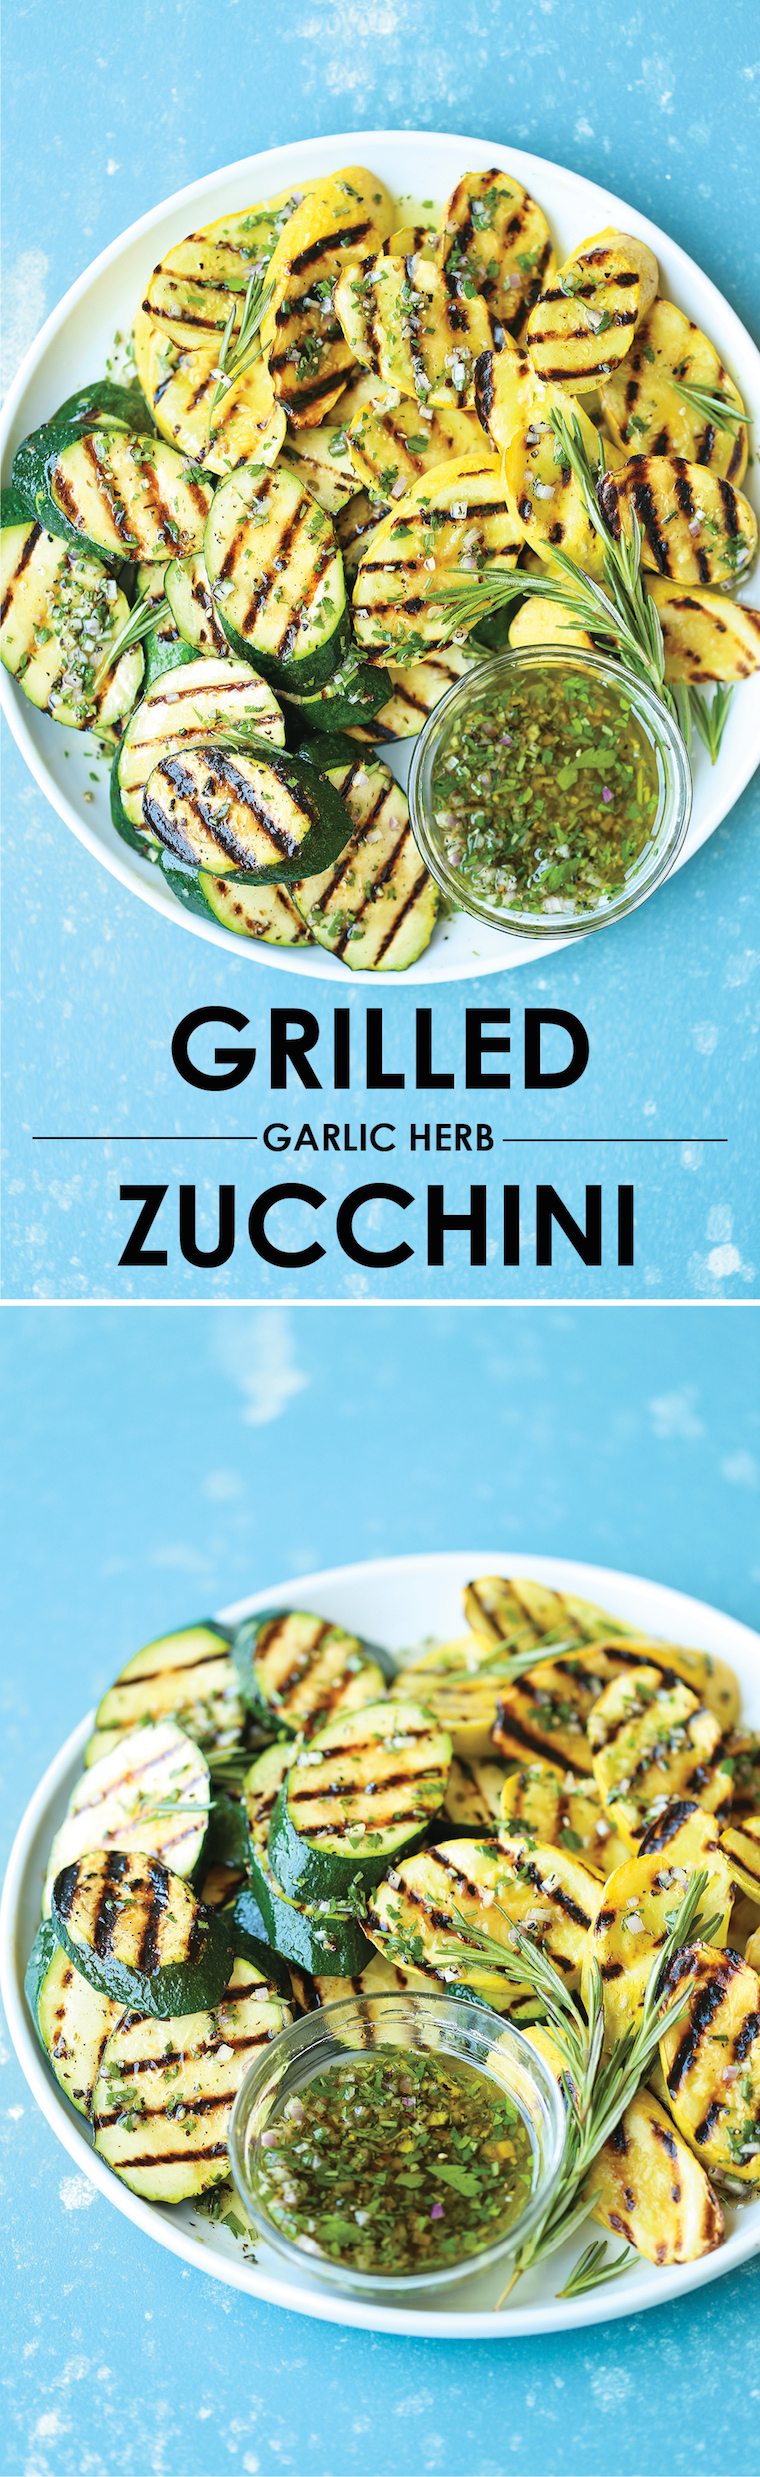 Grilled Garlic Herb Zucchini -An easy peasy summertime staple! The zucchini comes out perfectly garlicky, fresh, and crisp-tender – so simple yet so good!